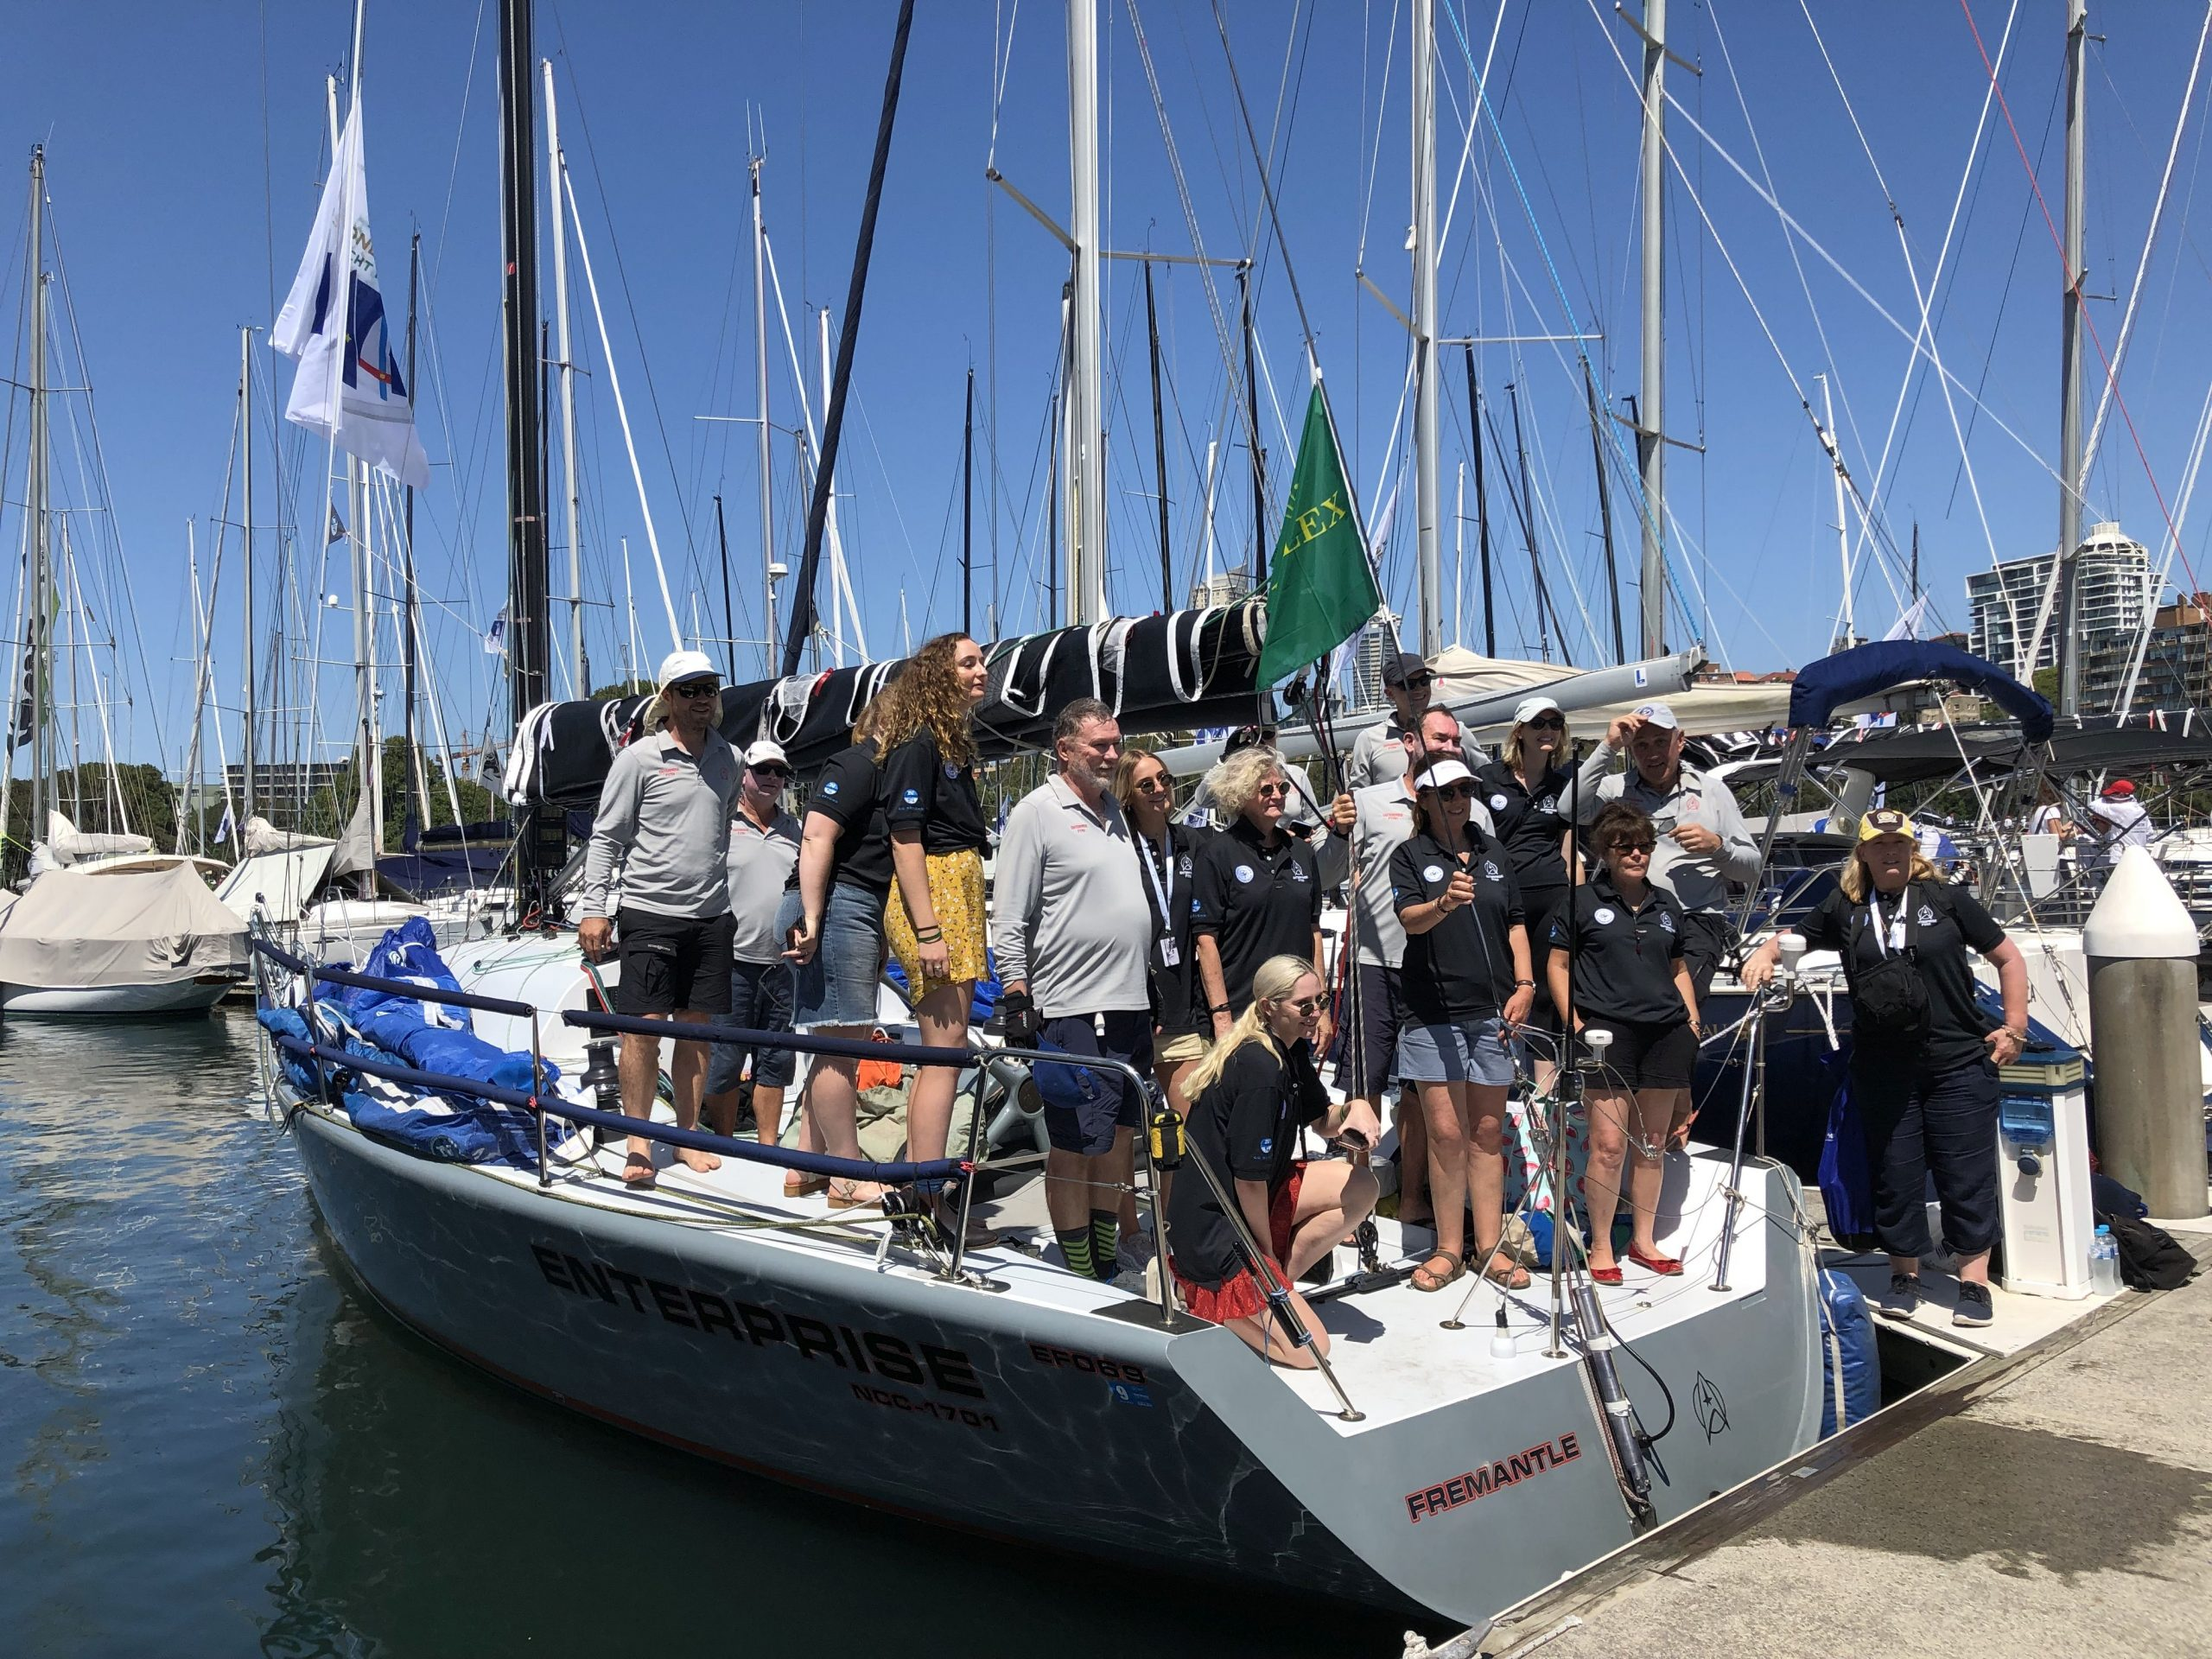 Enterprise crew and friends prior to the Sydney Hobart start - pic courtesy Enterprise